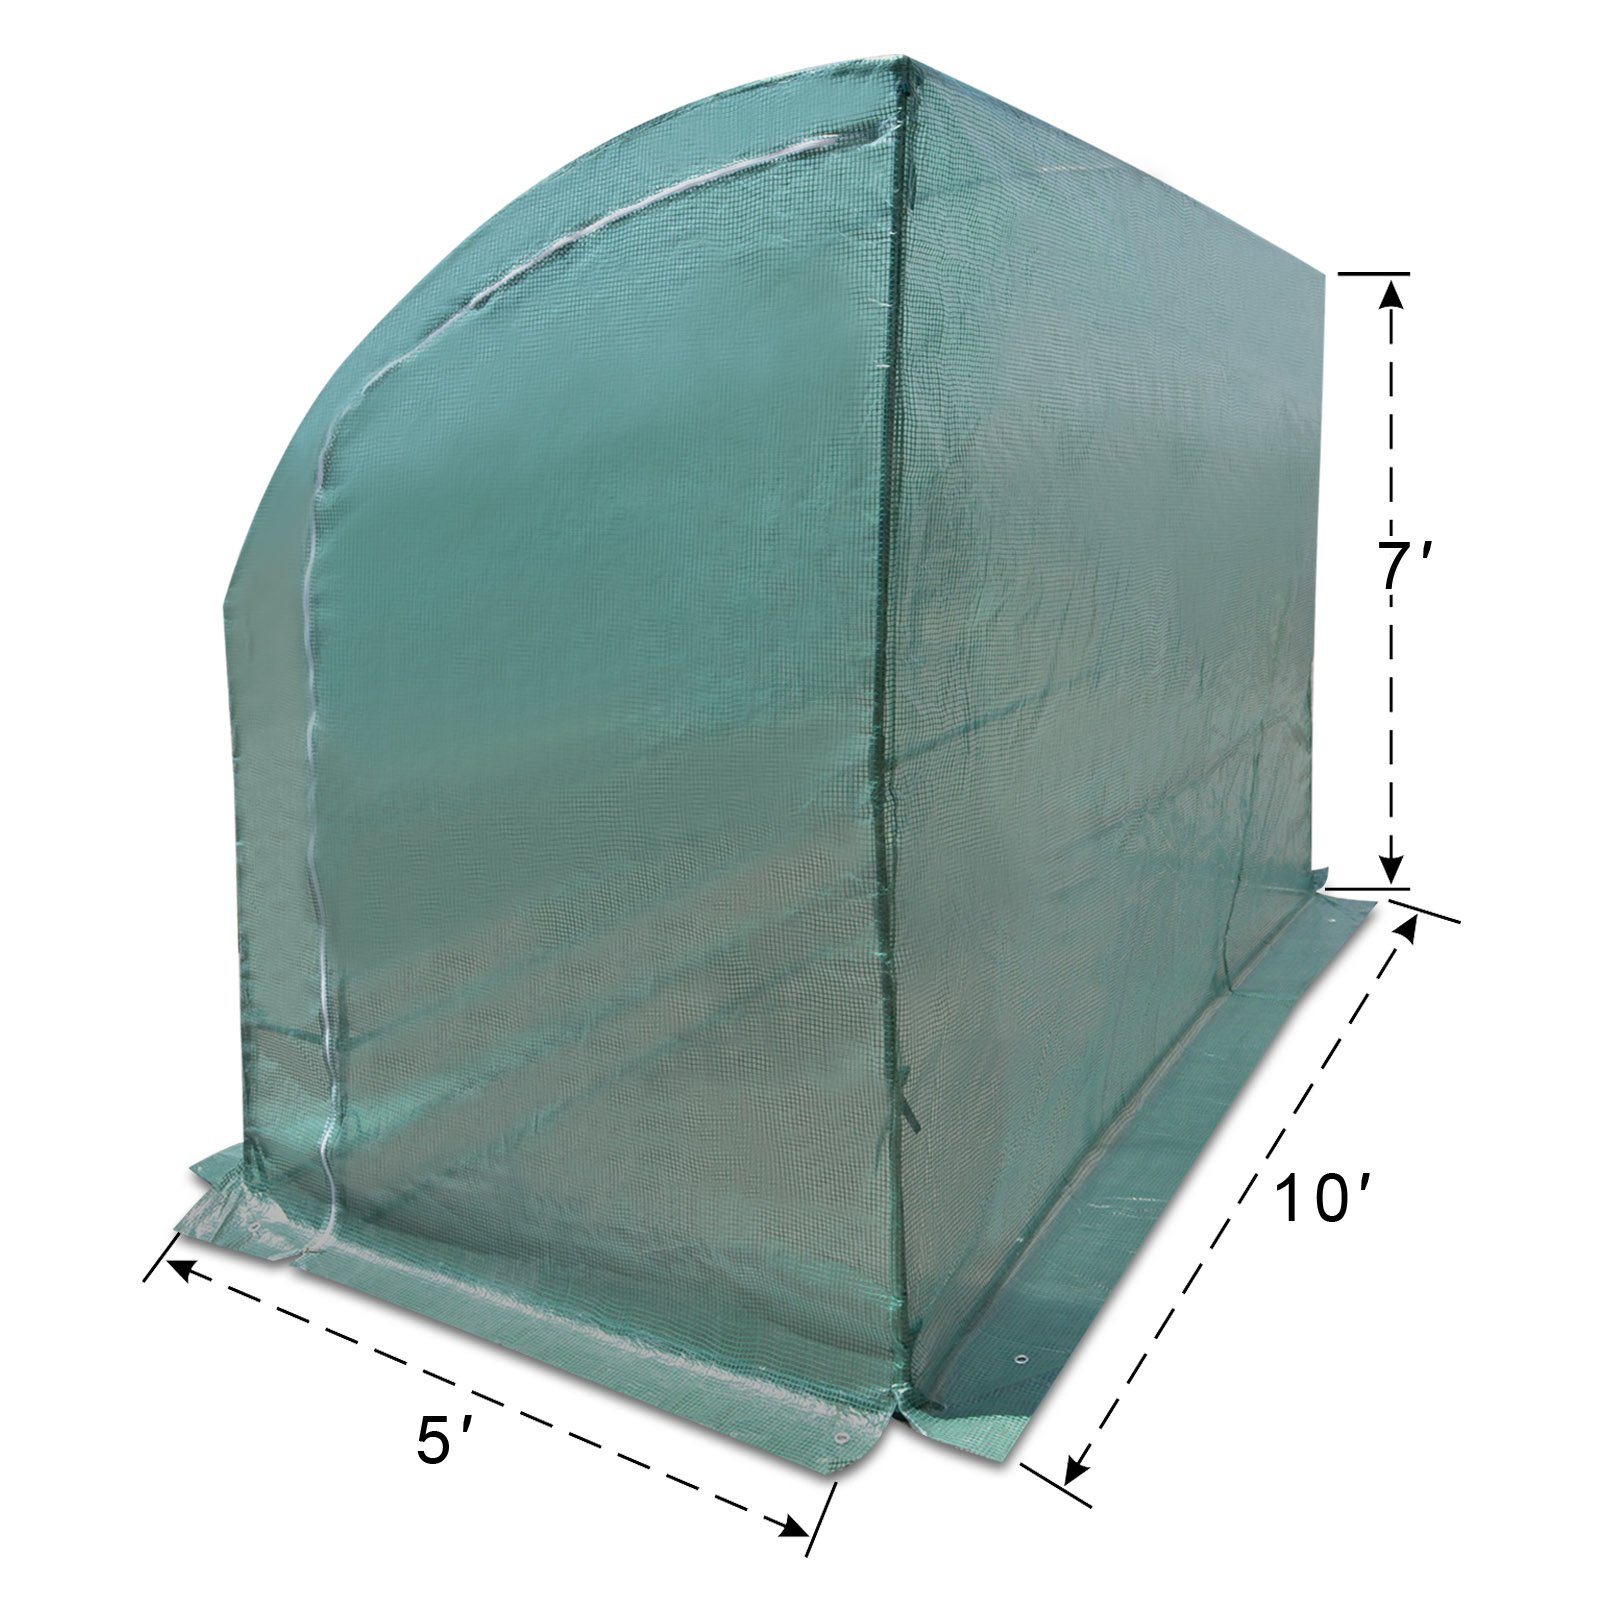 Strong Camel New Large Walk-in Wall Greenhouse 10x5x7'H w 3 Tiers/6 Shelves Gardening (Green) by Strong Camel (Image #4)